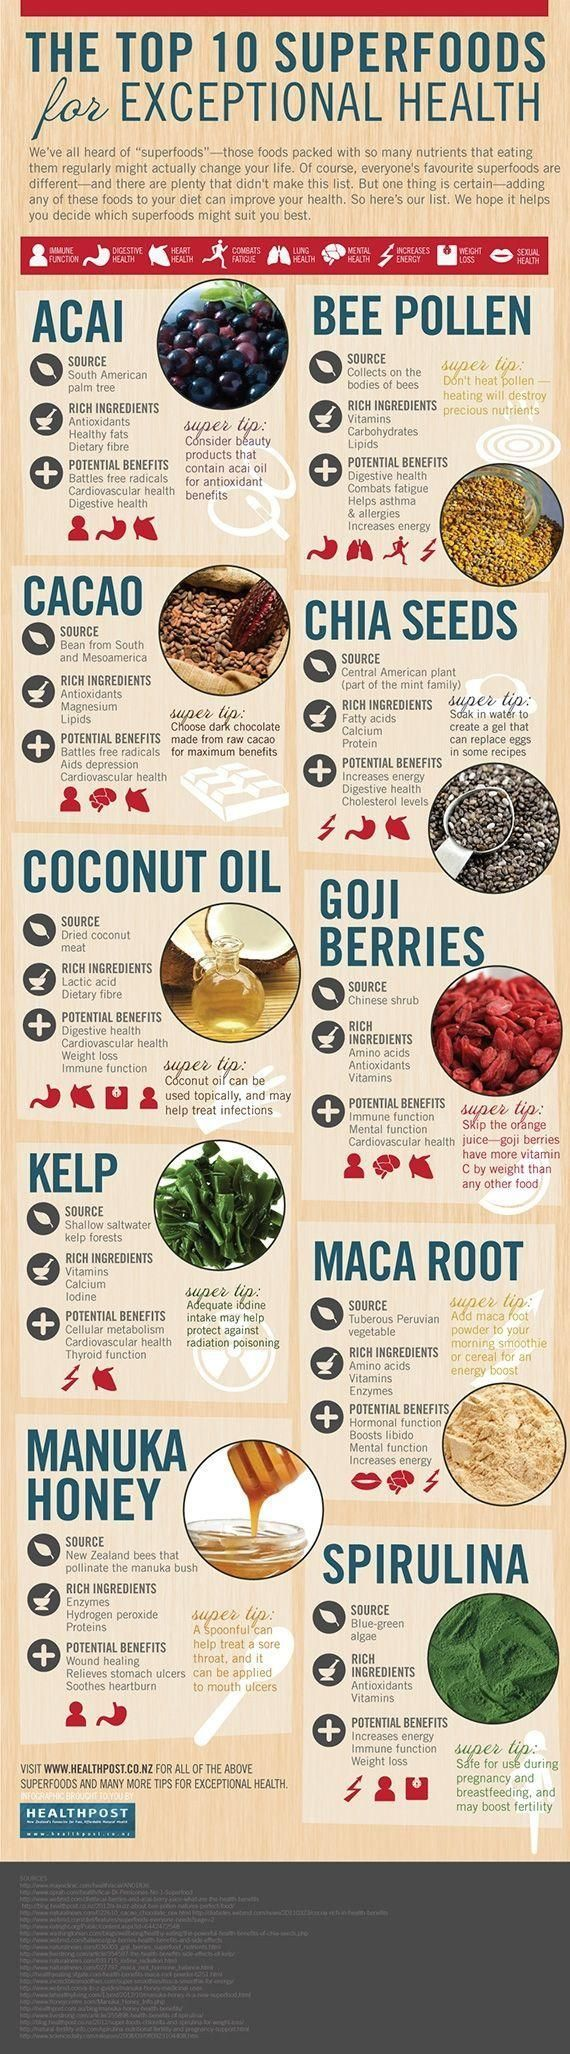 You might have HIV without knowing it; here are the 3 signs Holistic Nutrition: Pack your diet with these multi-talented superfoods - Hubub